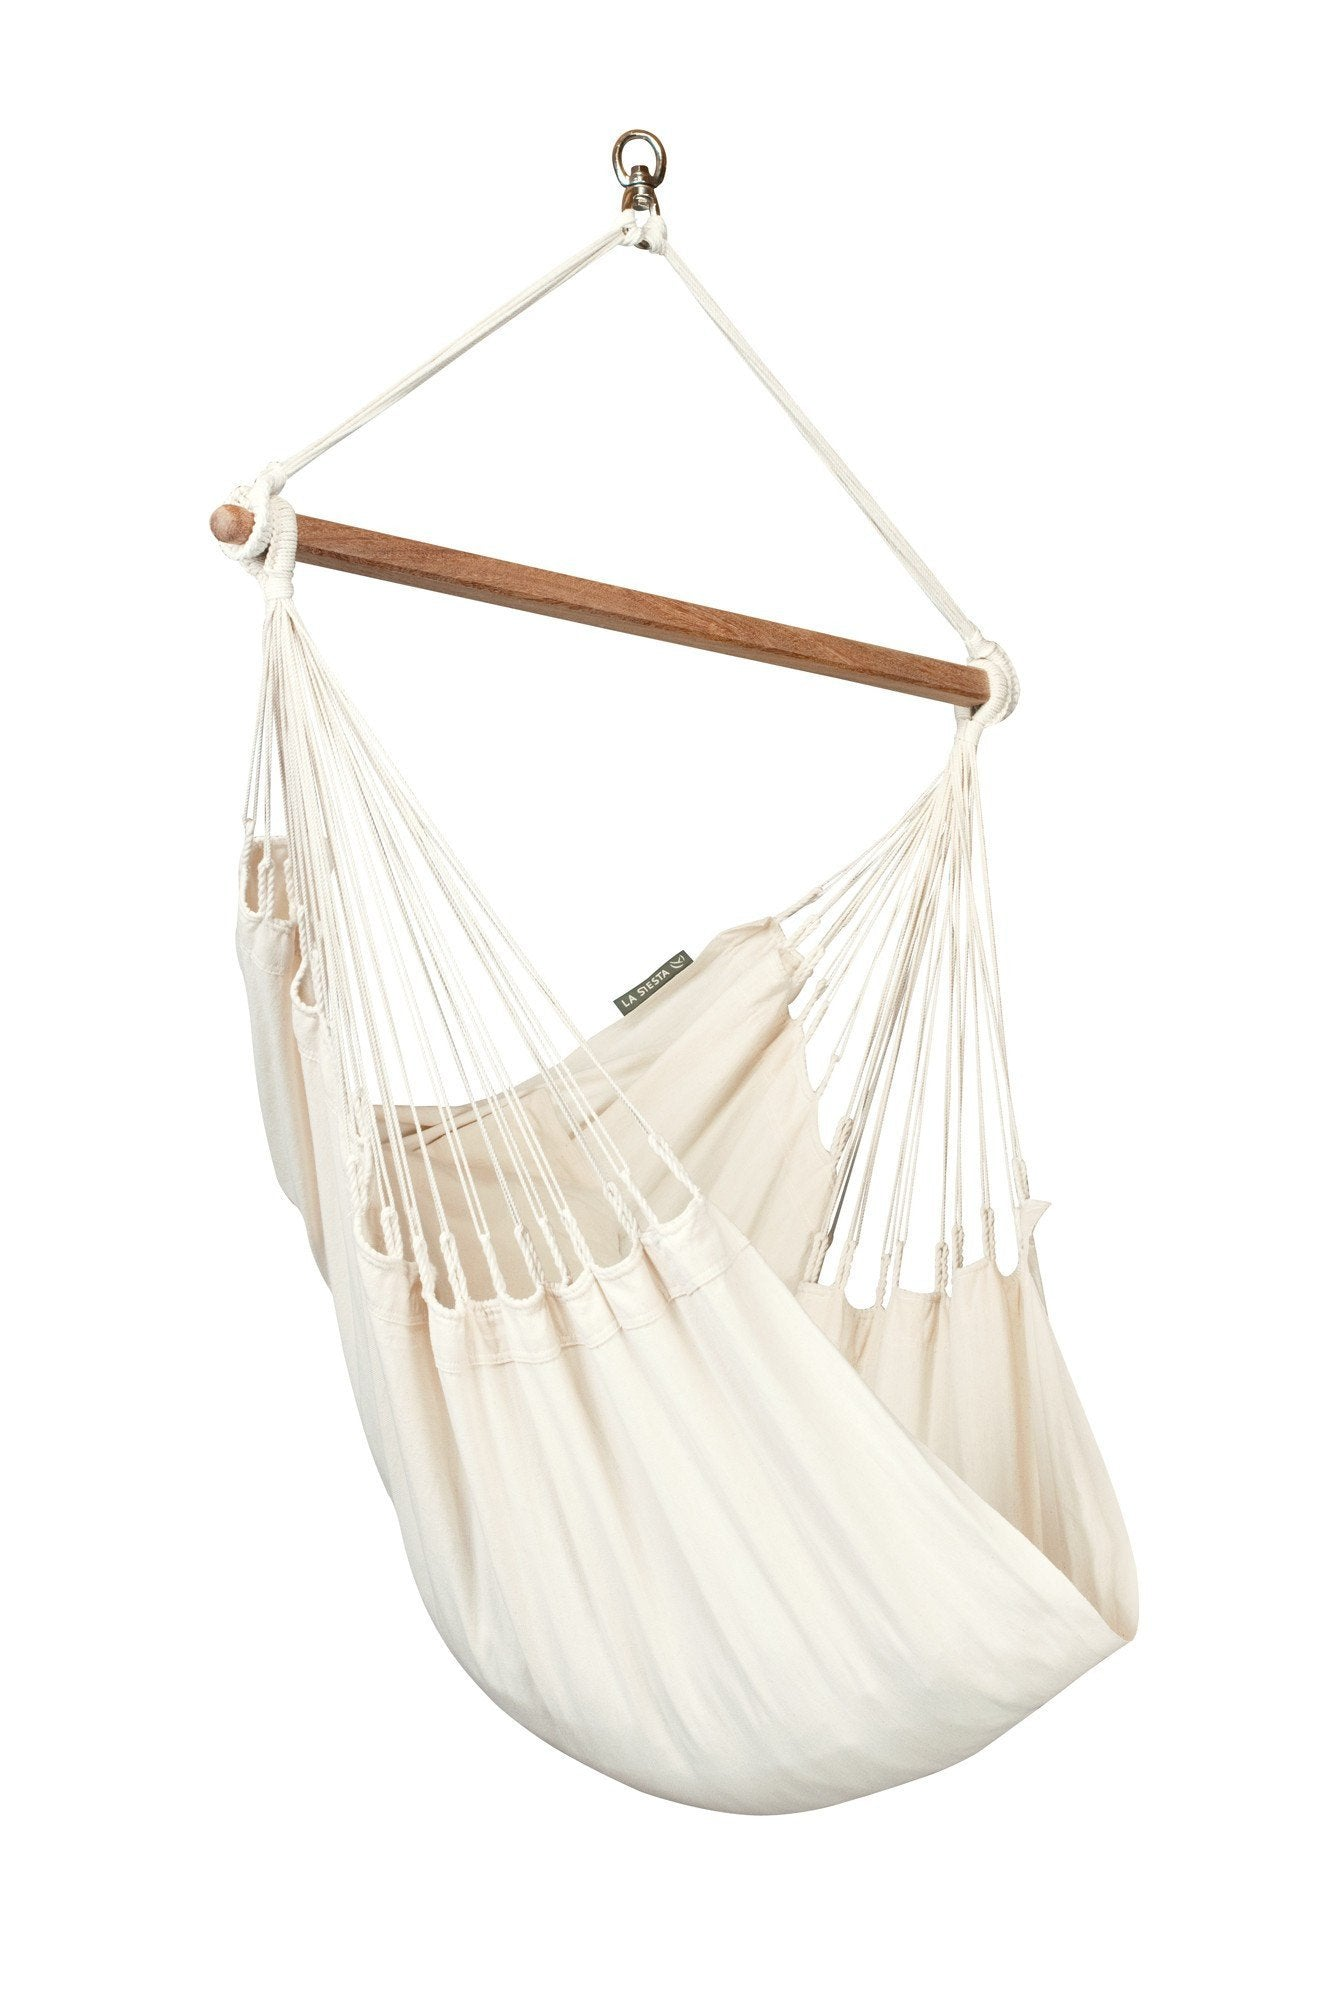 Hammock chair MODESTA